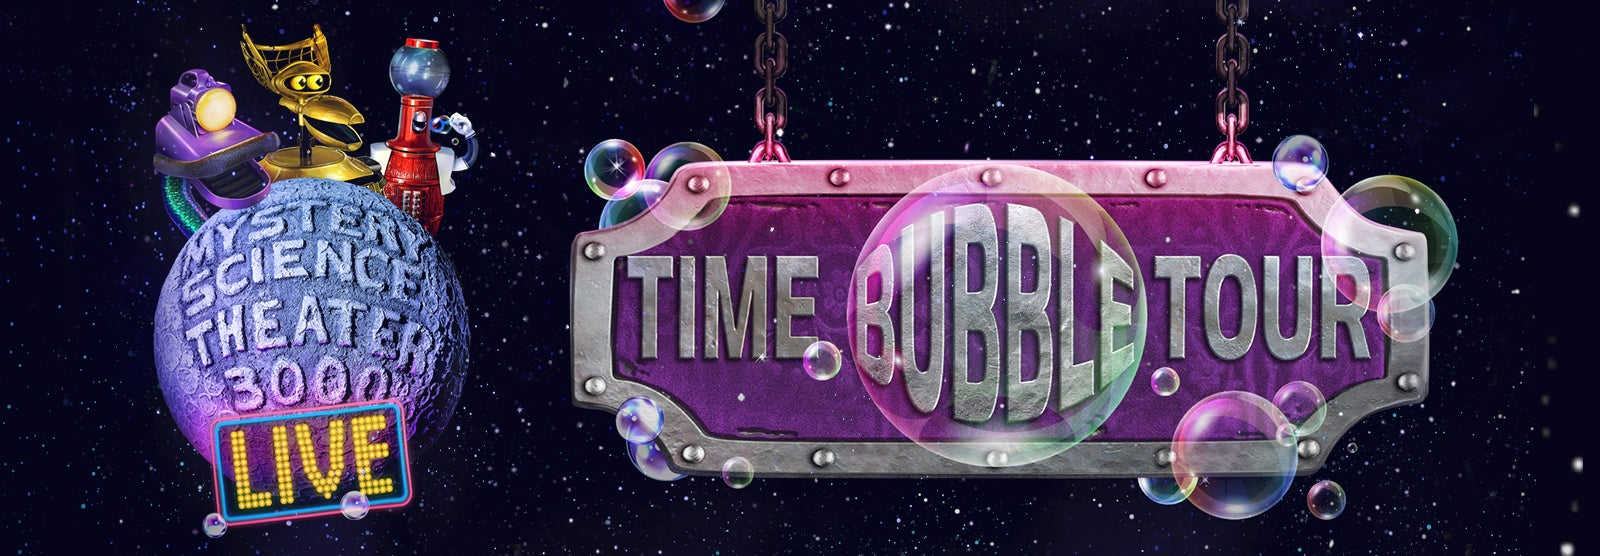 Mystery Science Theater 3000 (MST3K) LIVE: Time Bubble Tour